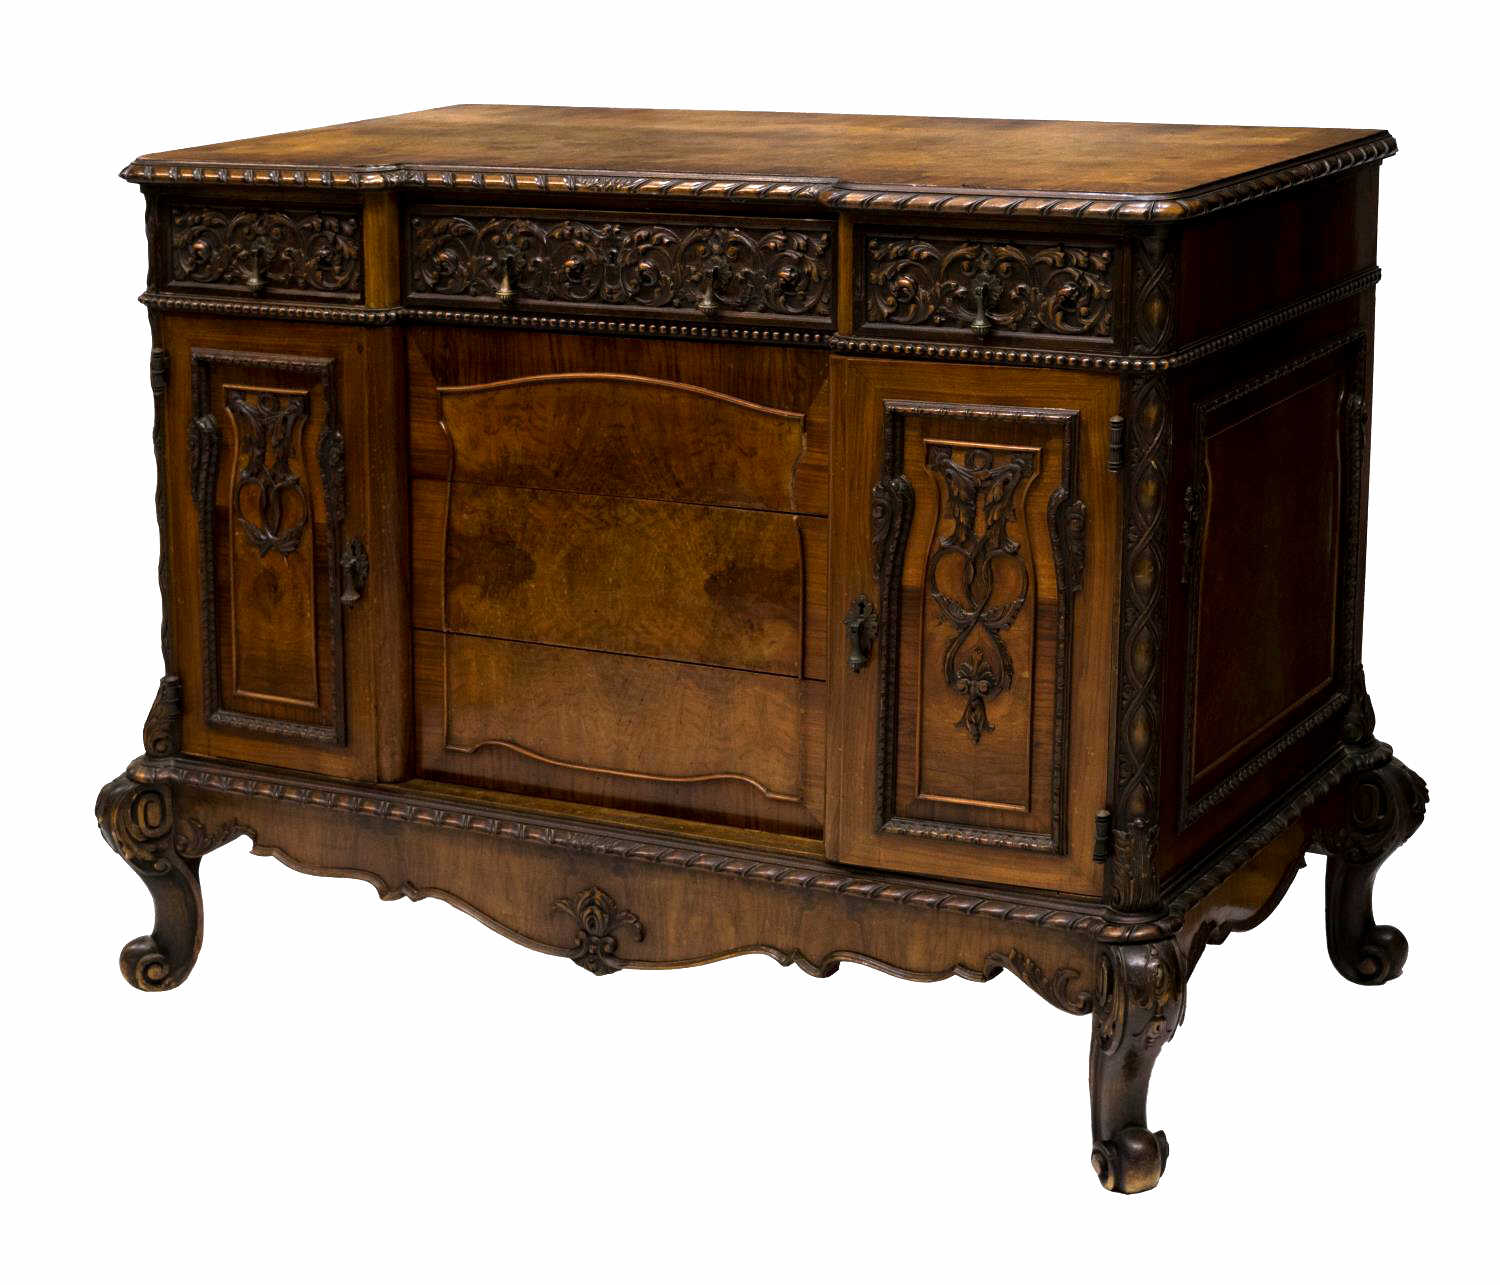 Italian baroque style walnut commode 19th c february estates auction day - Commode style baroque ...